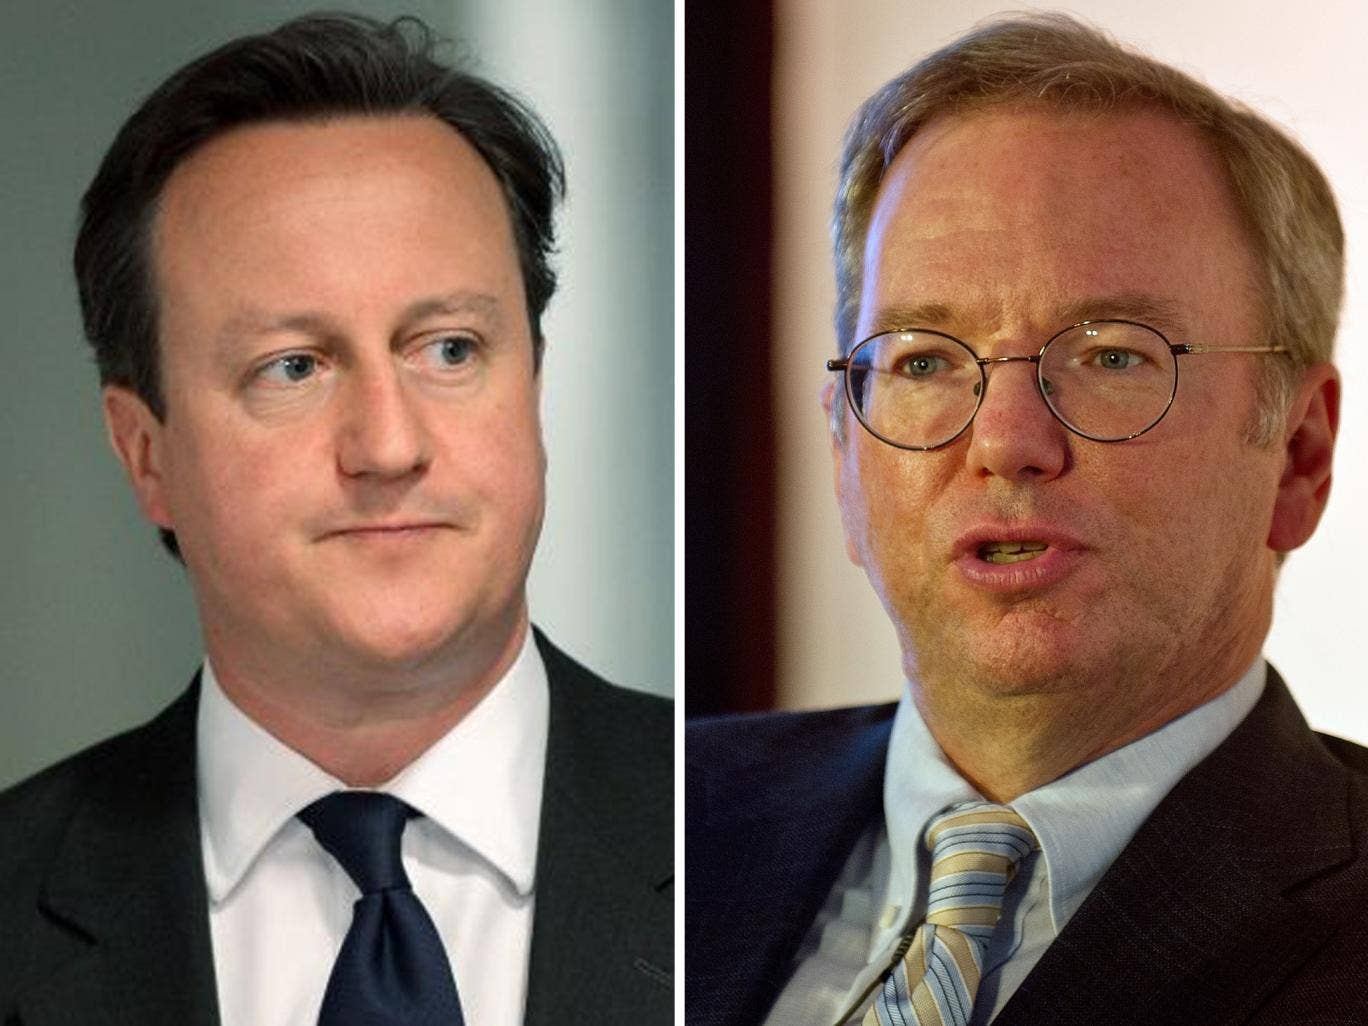 David Cameron will meet Google's executive chairman at the Prime Minister's Business Advisory Group on Monday